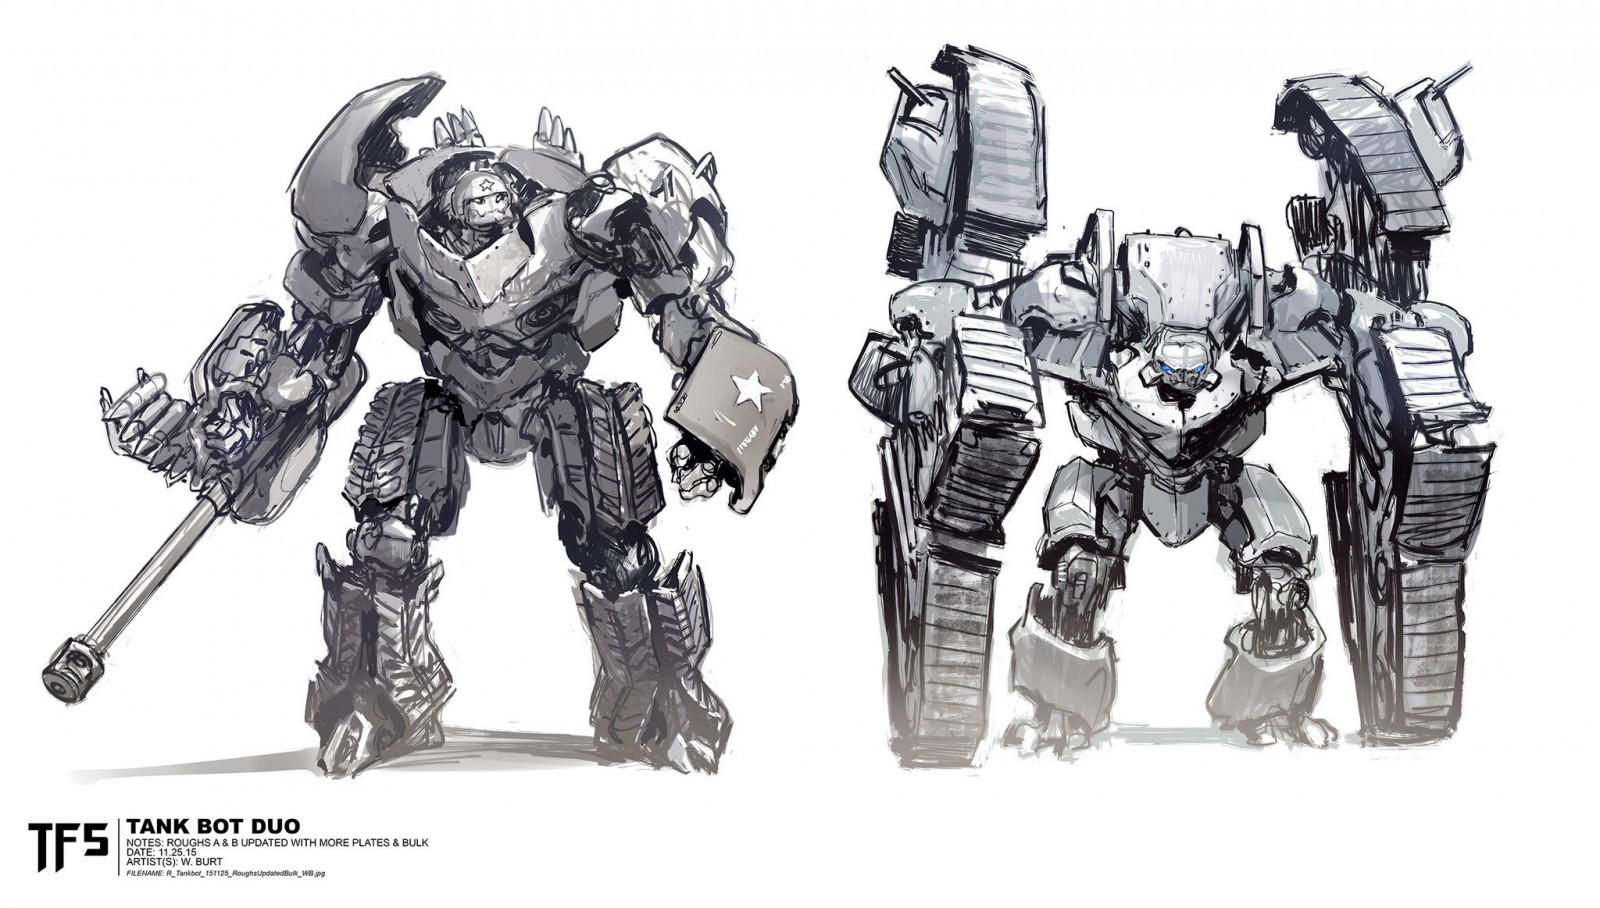 Transformers News: More Concepts for Transformers: The Last Knight Dragonicus, Bulldog, Mega by Tedeschi, Pringle, Burt